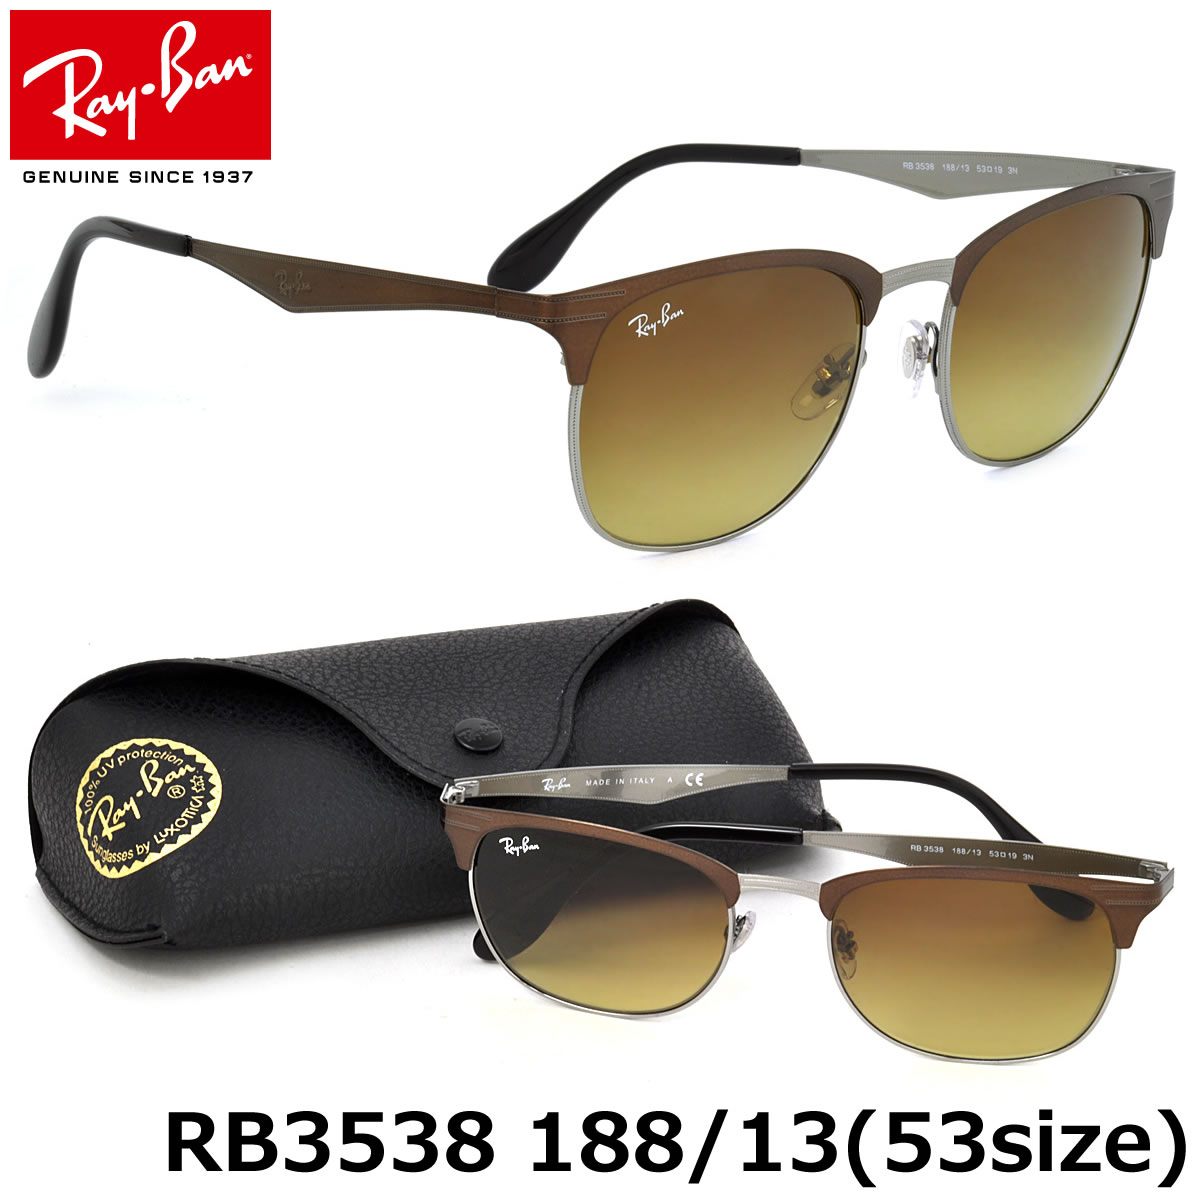 Optical Shop Thats  Ray-Ban Sunglasses RB3538 188 13 53size GENUINE ... 30a63efd29